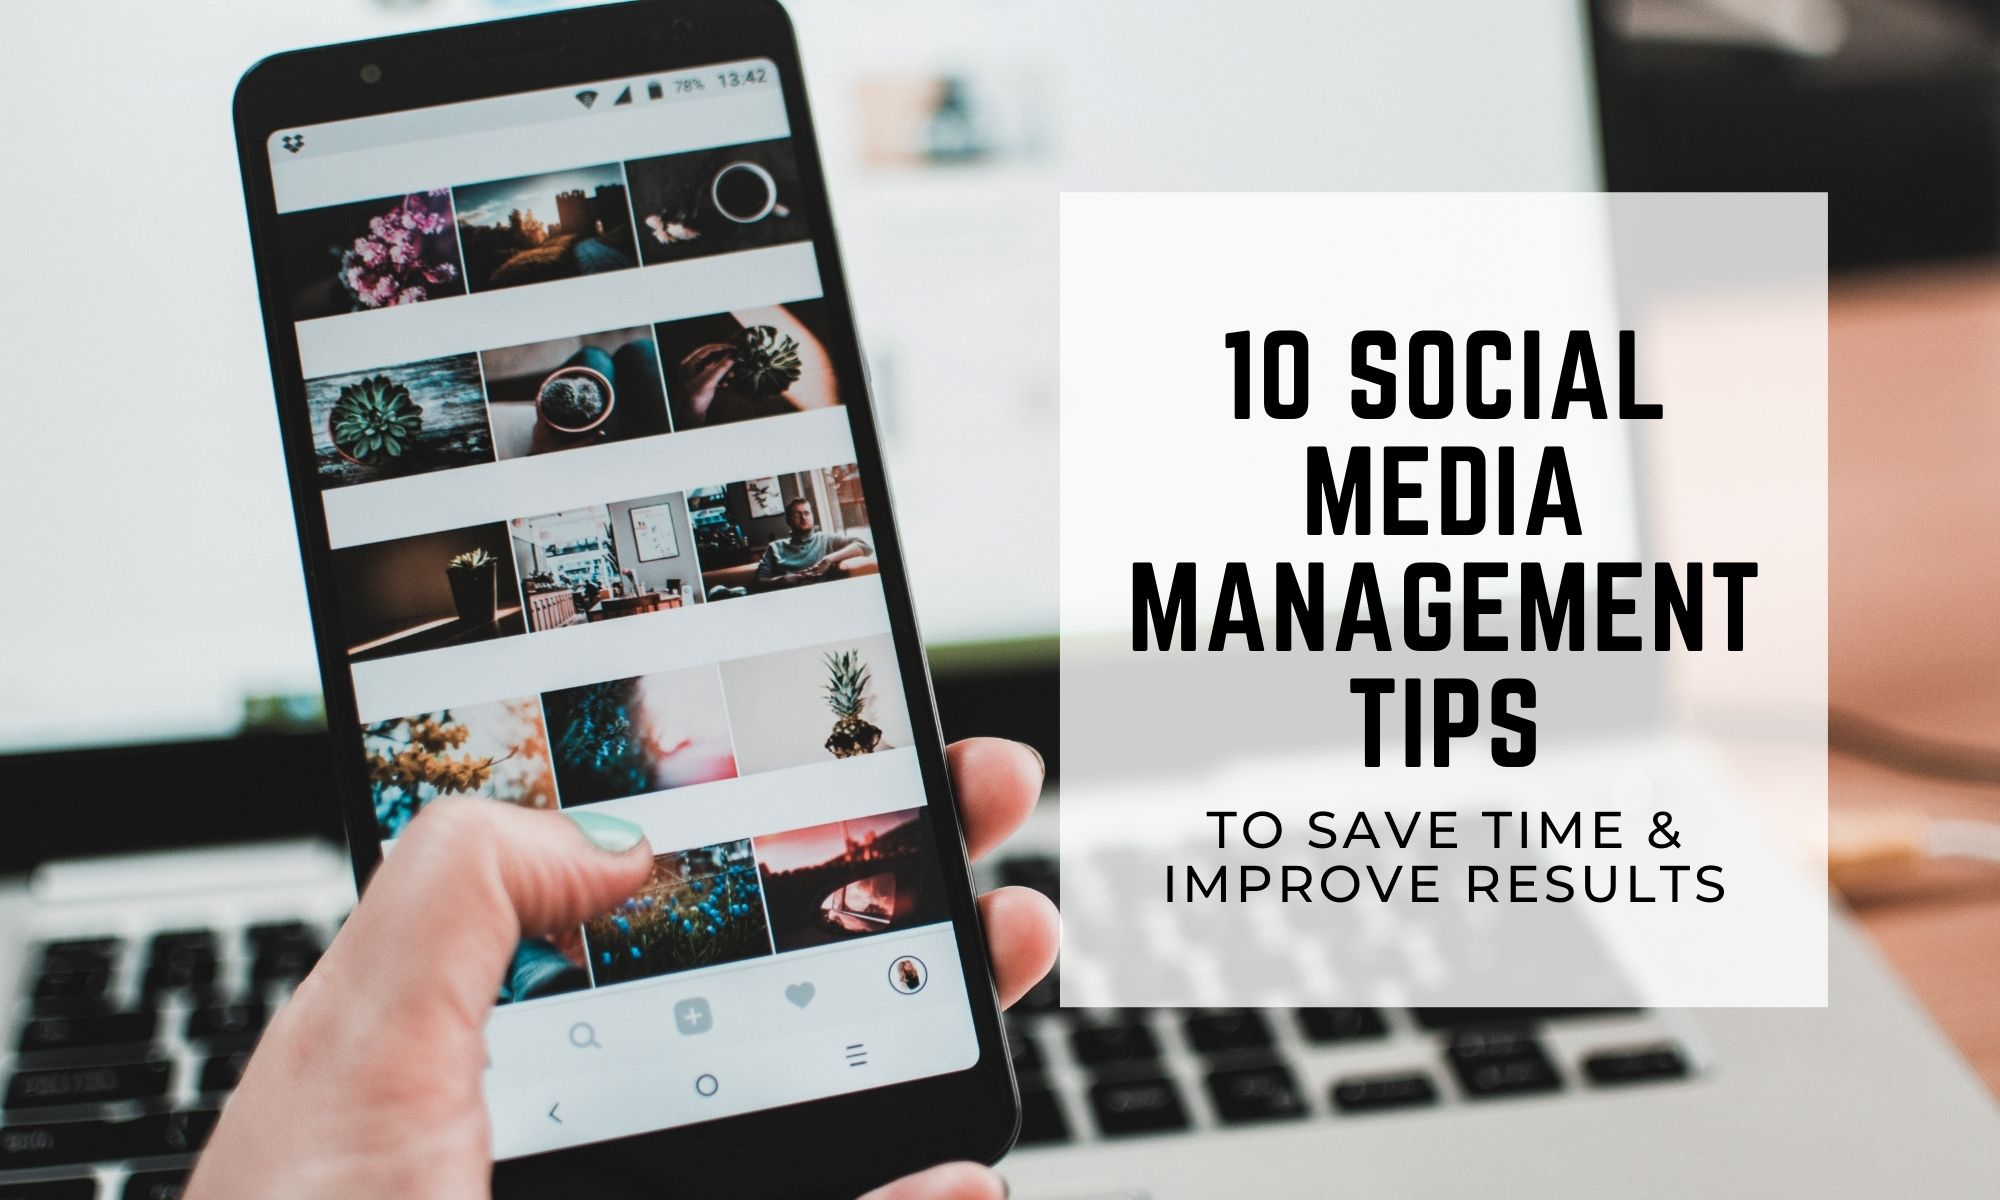 Social Media Management: 10 Tips to Save Time & Improve Results